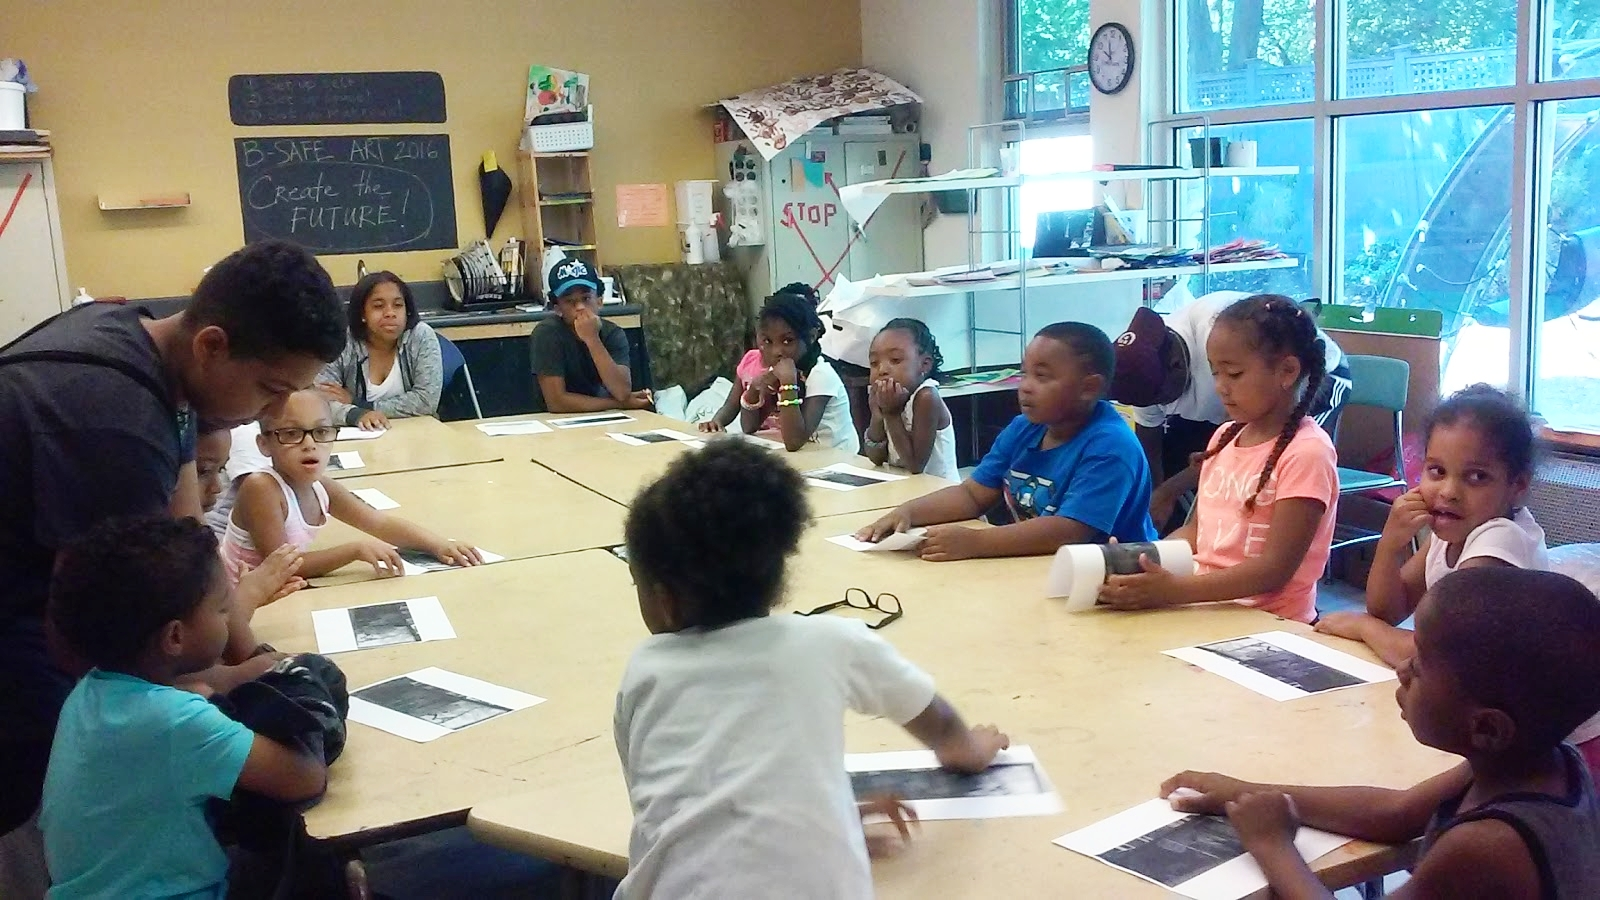 JCITs led programming for elementary schoolers